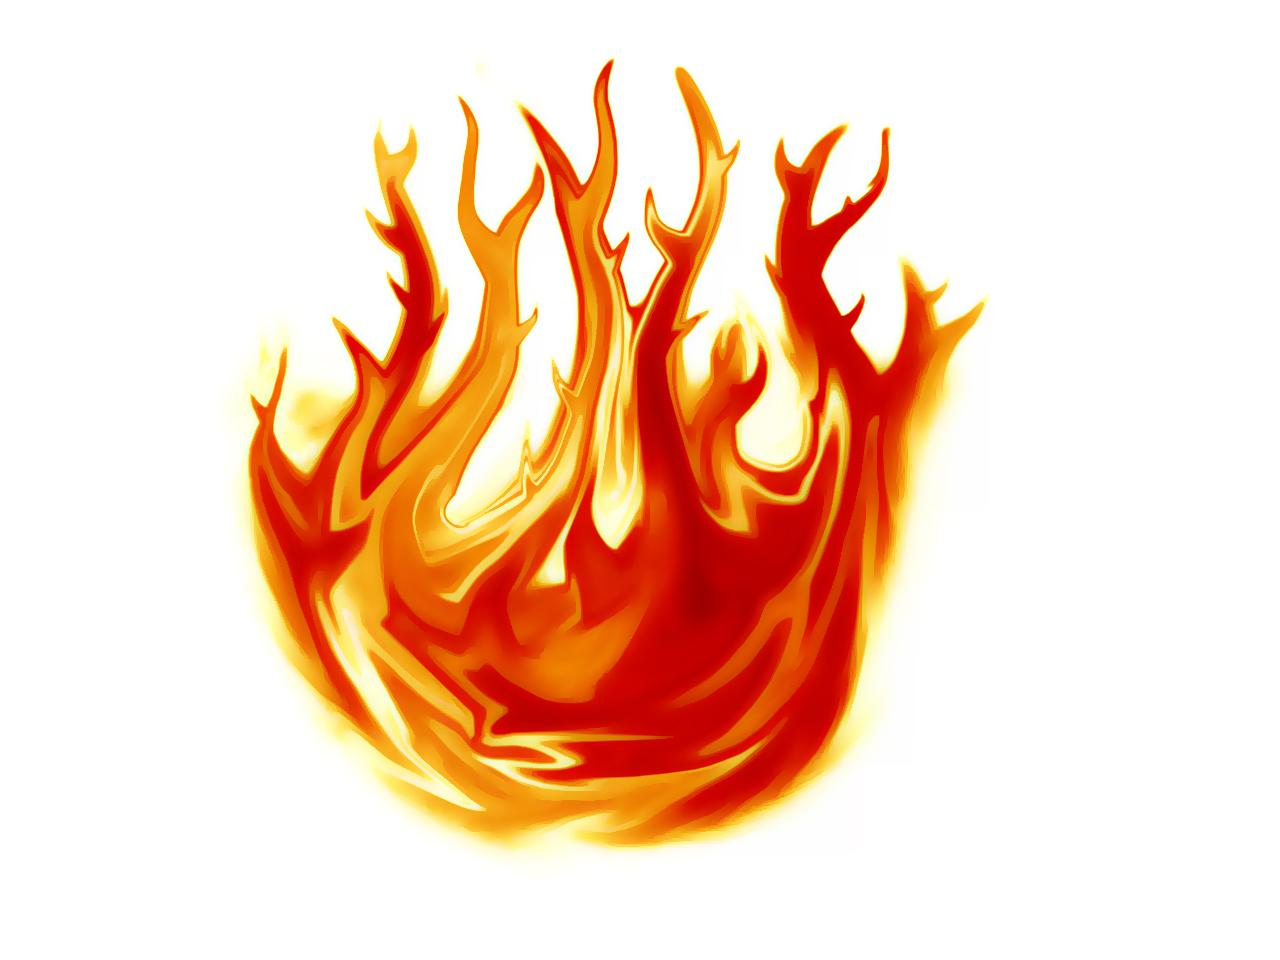 Realistic Fire Png images collection for free download.